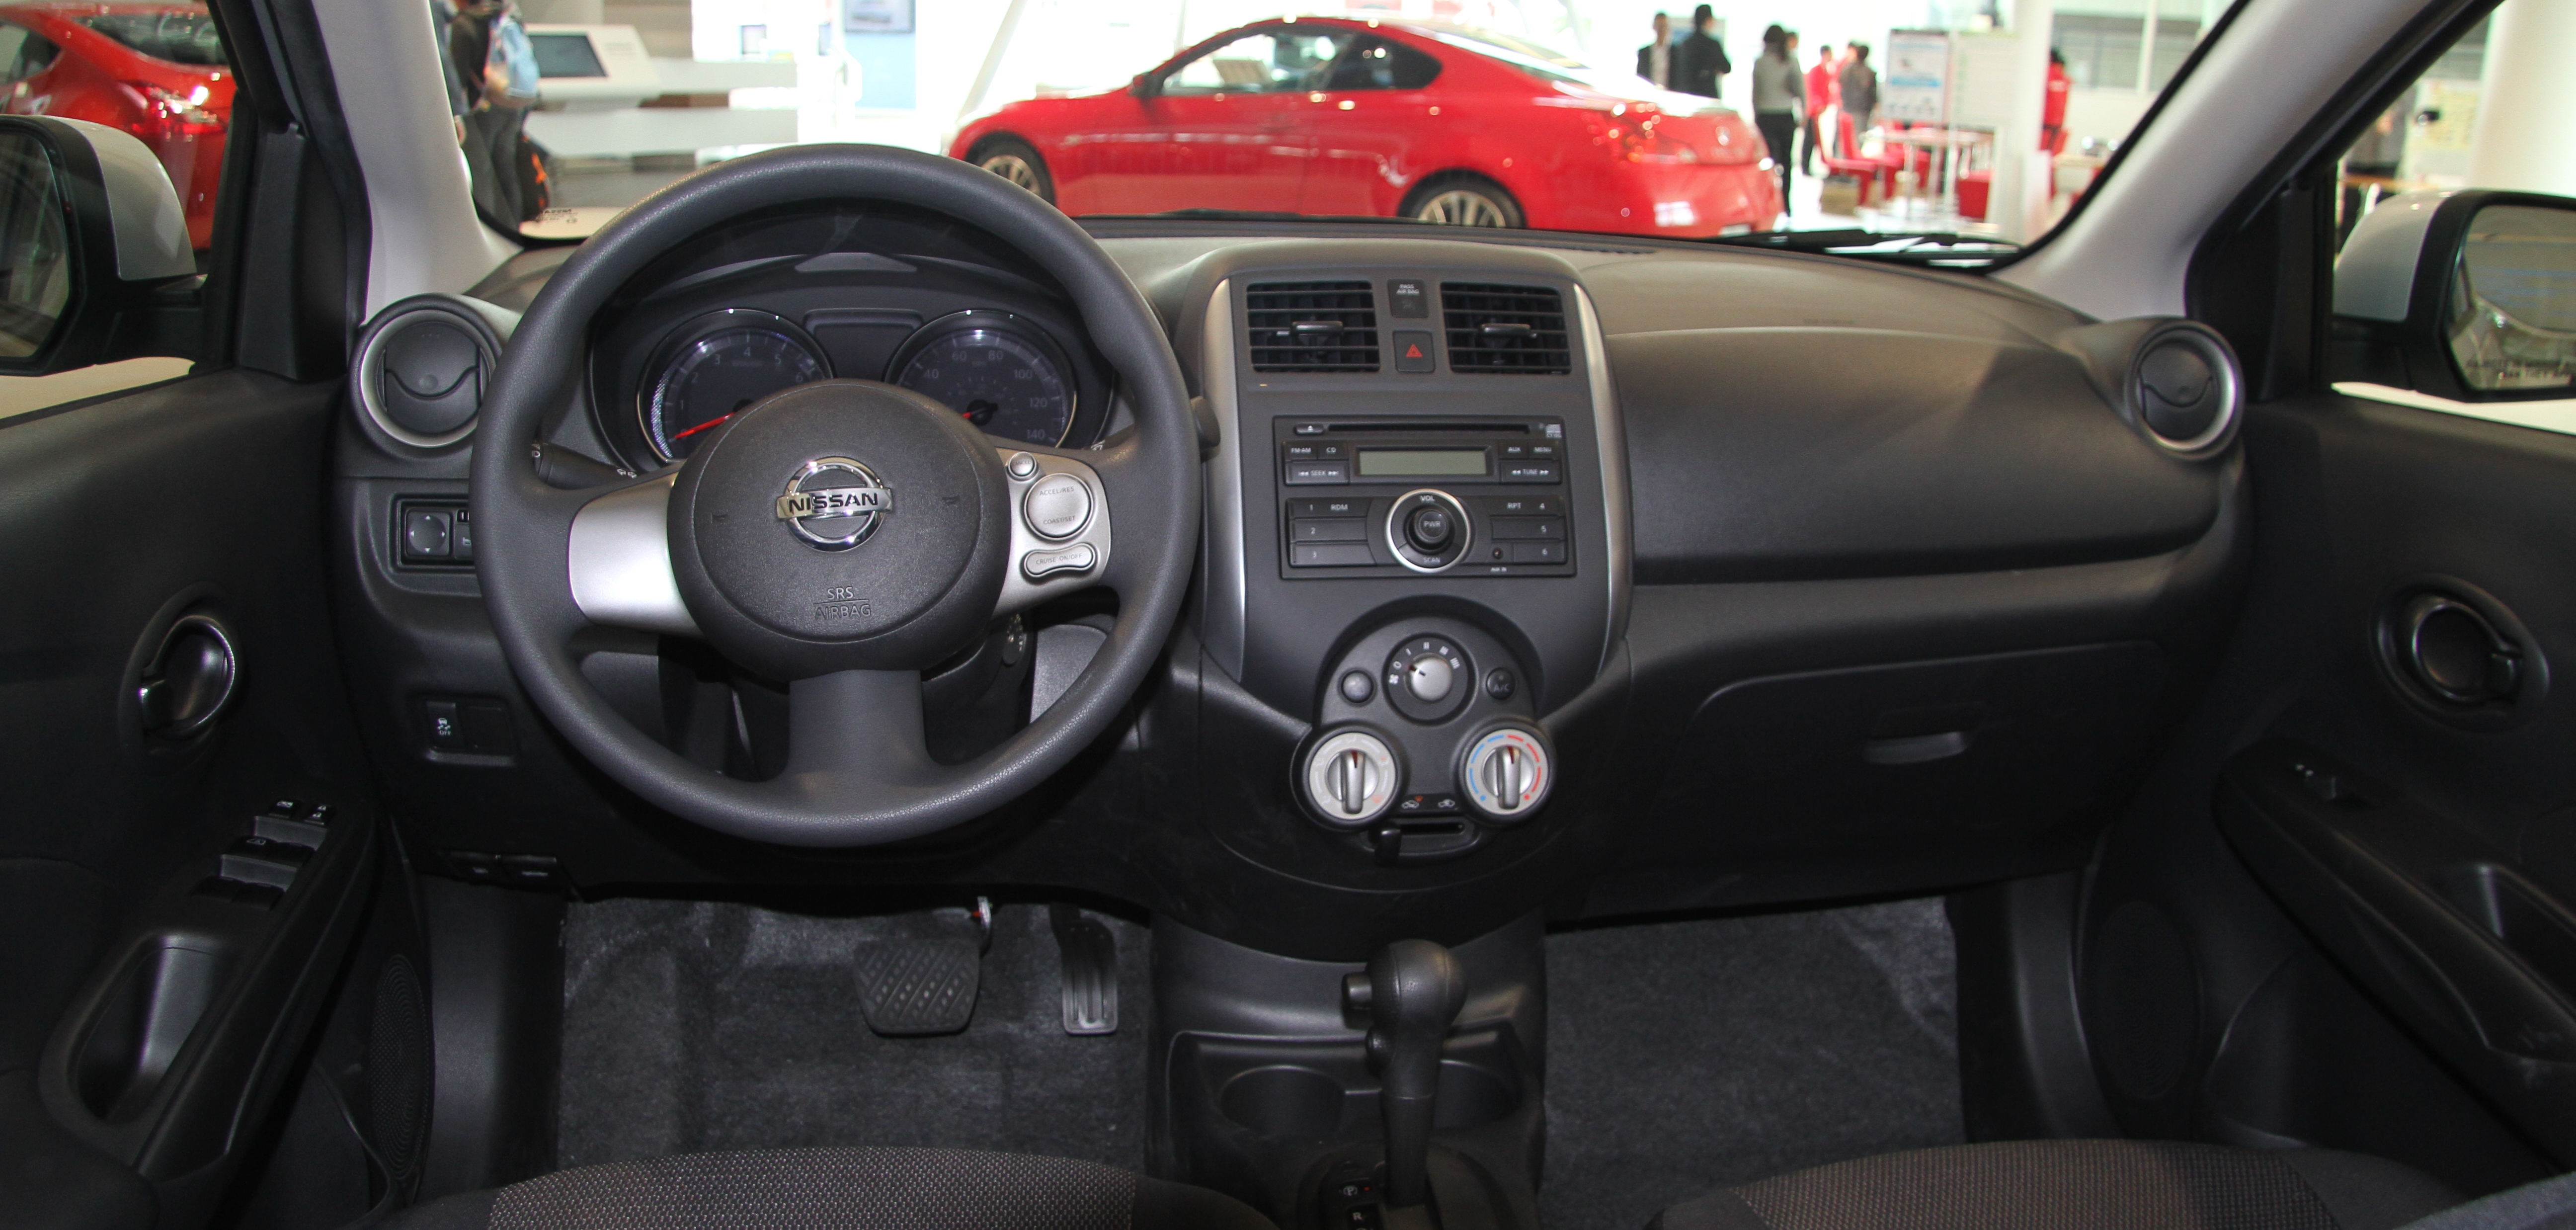 File:Nissan Versa Sedan N17 1.6SV Interior